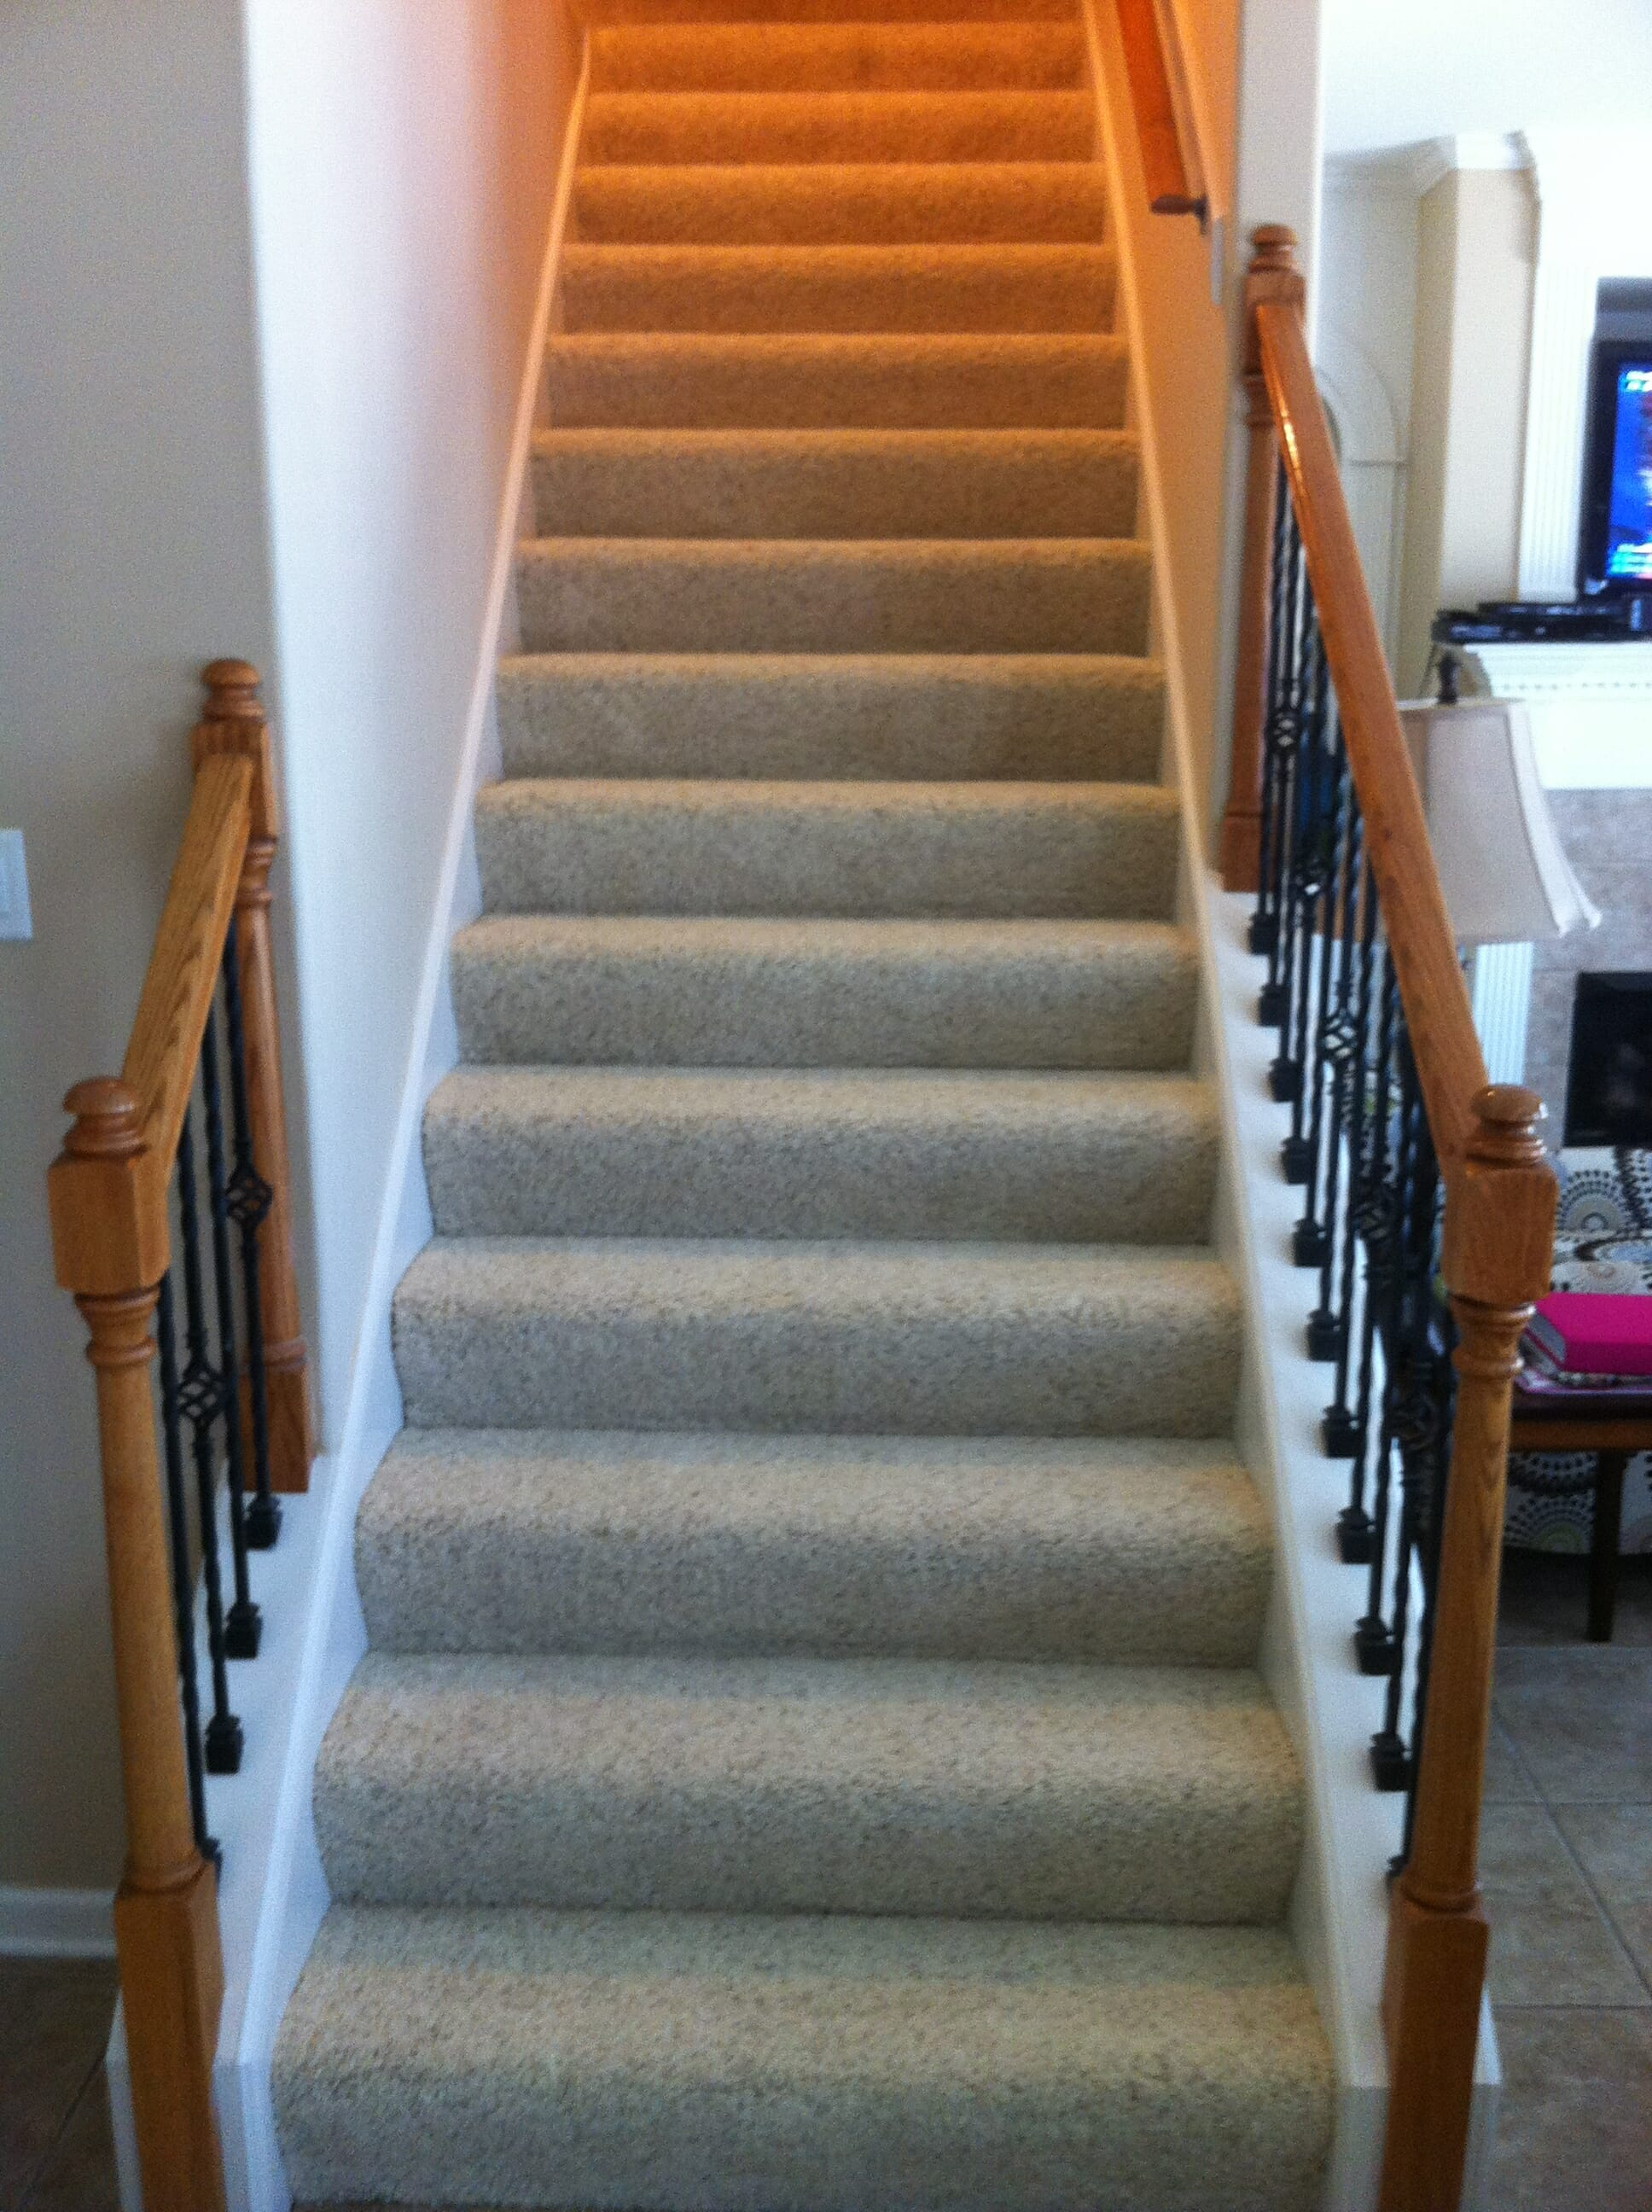 How Much Does It Cost To Install Carpet On Stairs Home Design